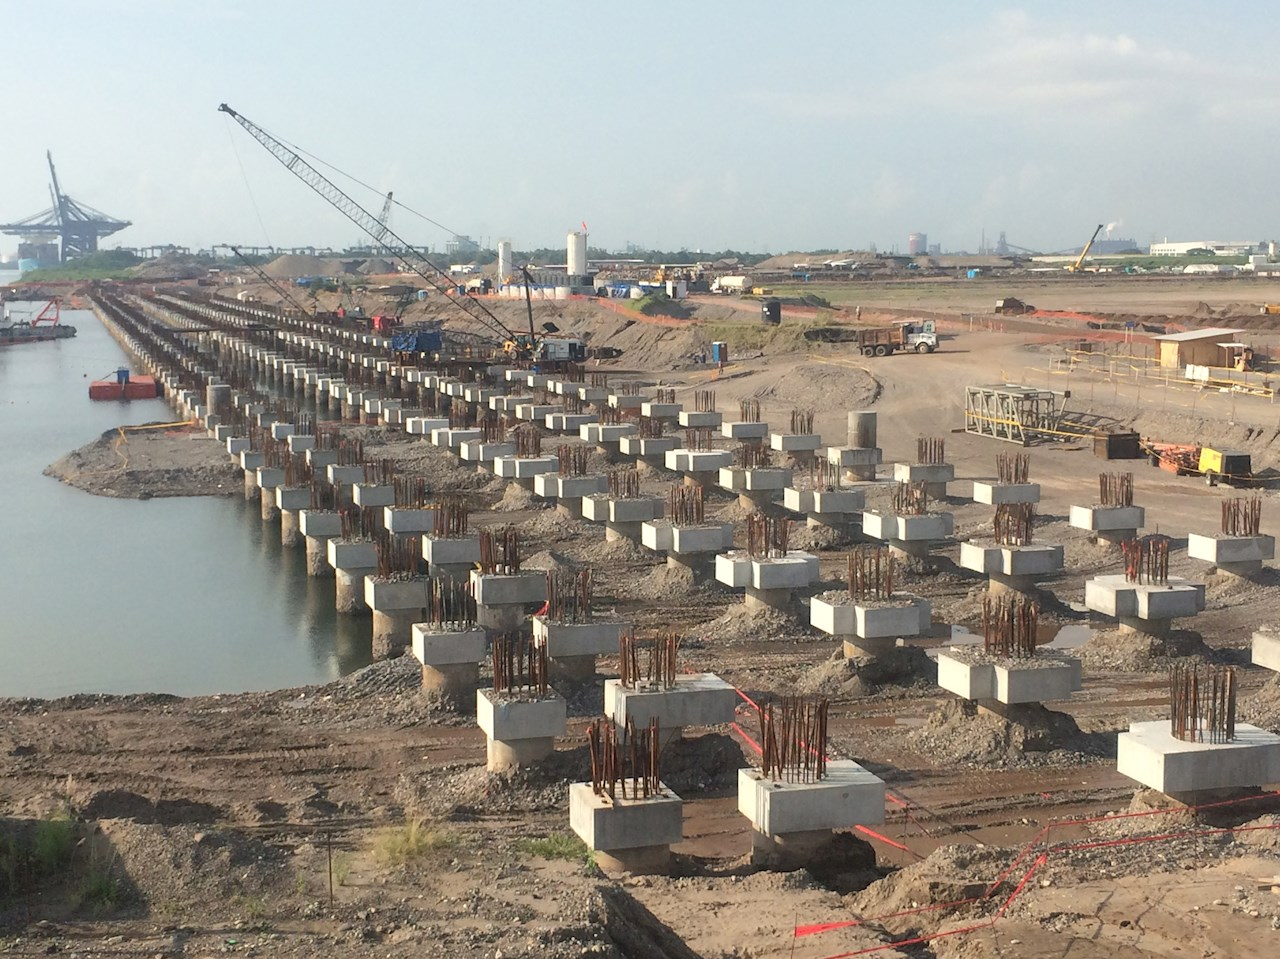 The construction work for the APMT's terminal in the port of Lázaro Cárdenas is currently underway